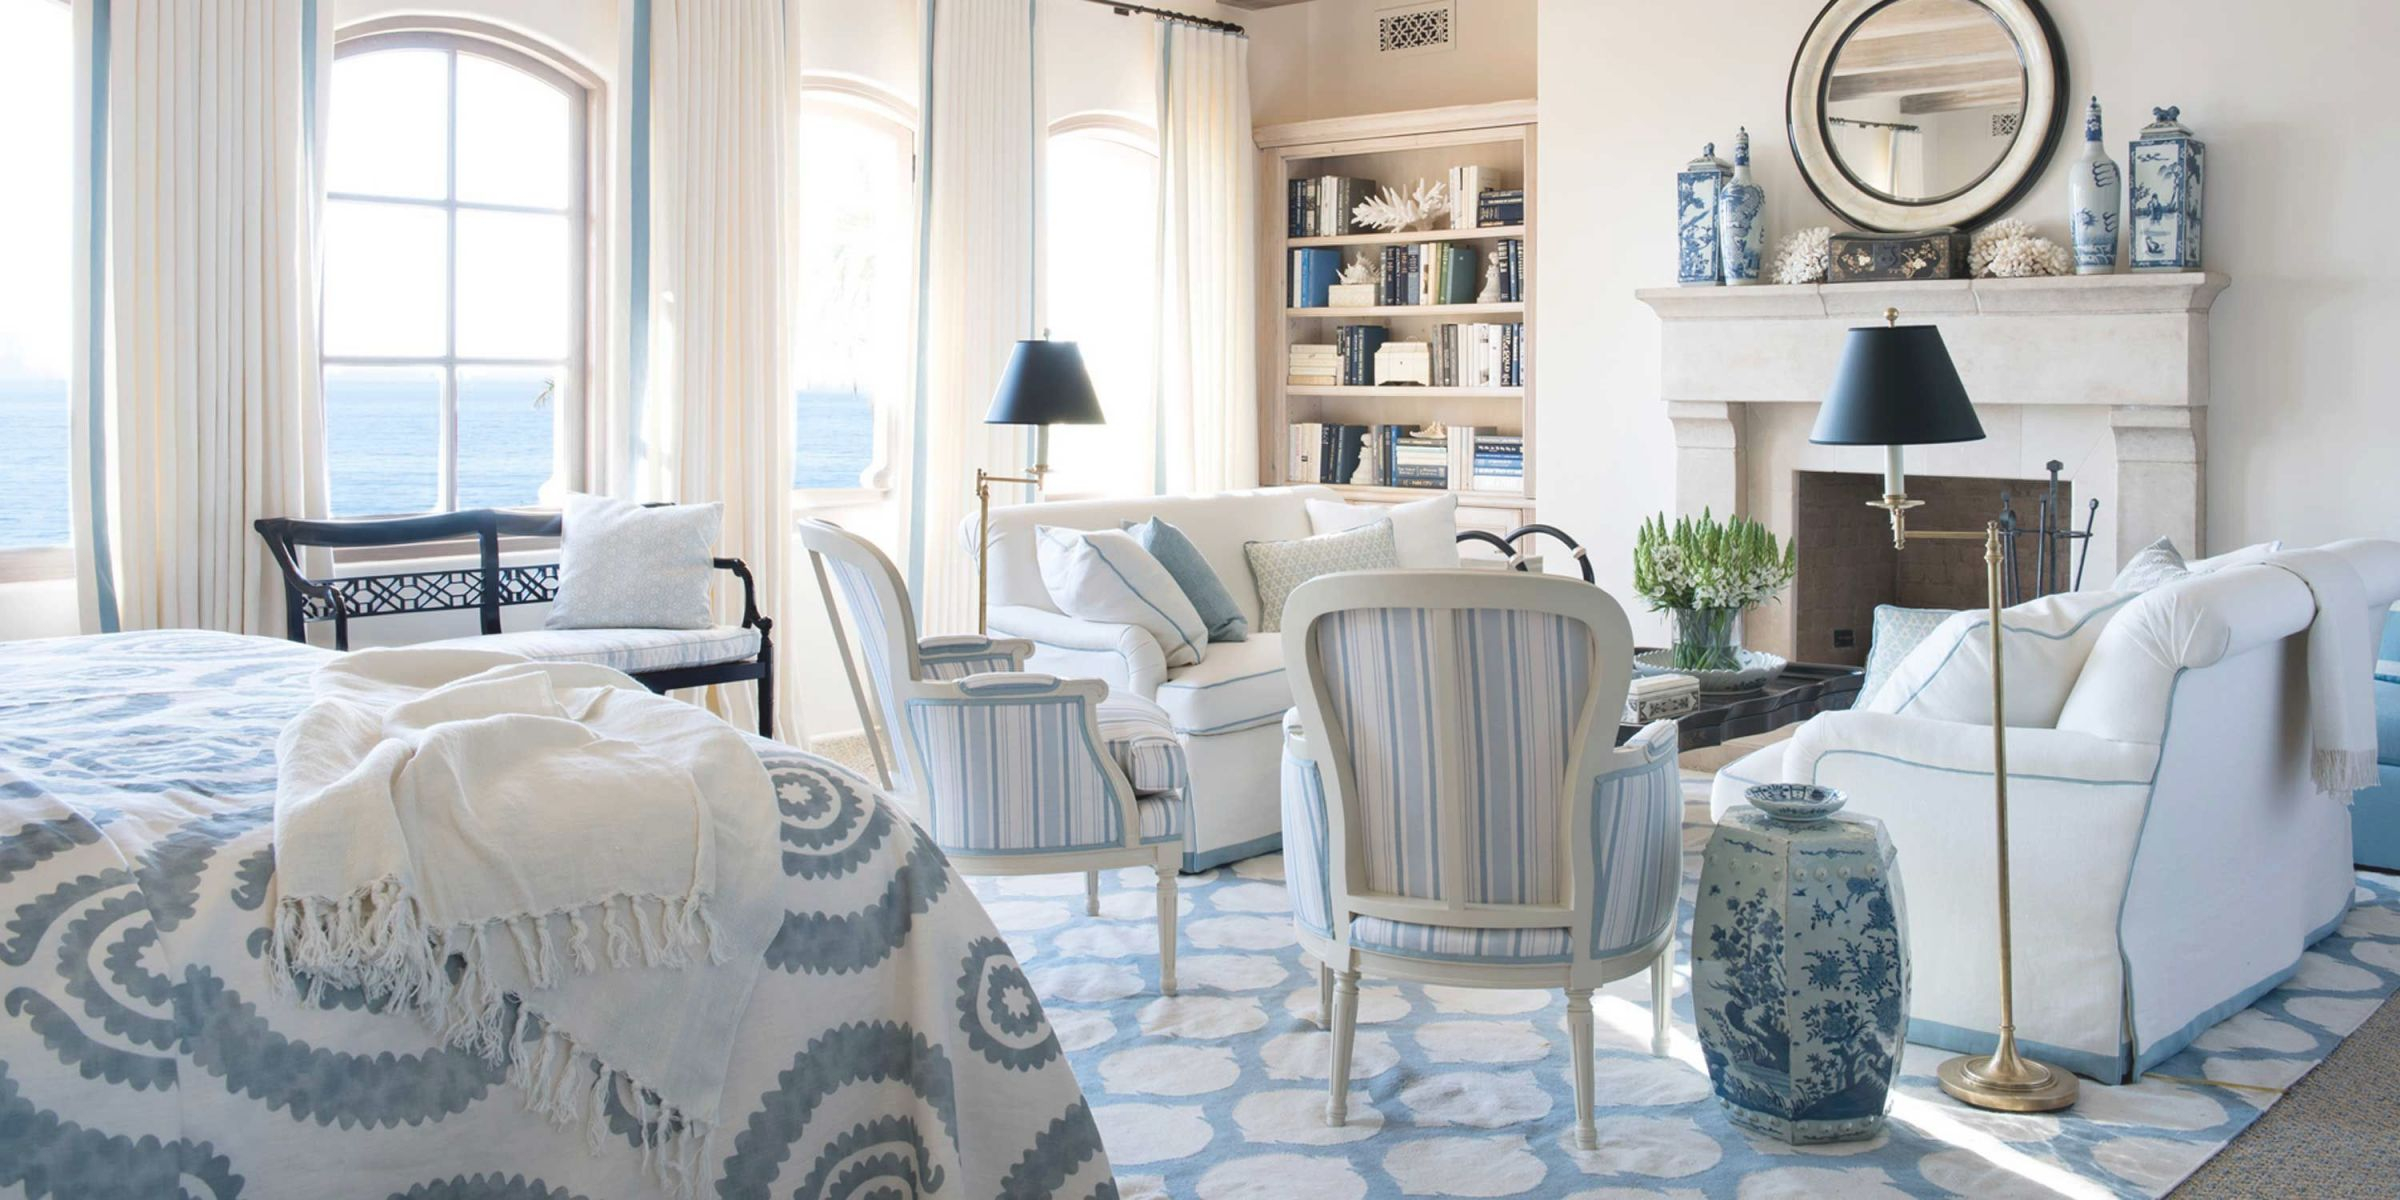 Blue And White Rooms - Decorating With Blue And White regarding Blue And White Living Room